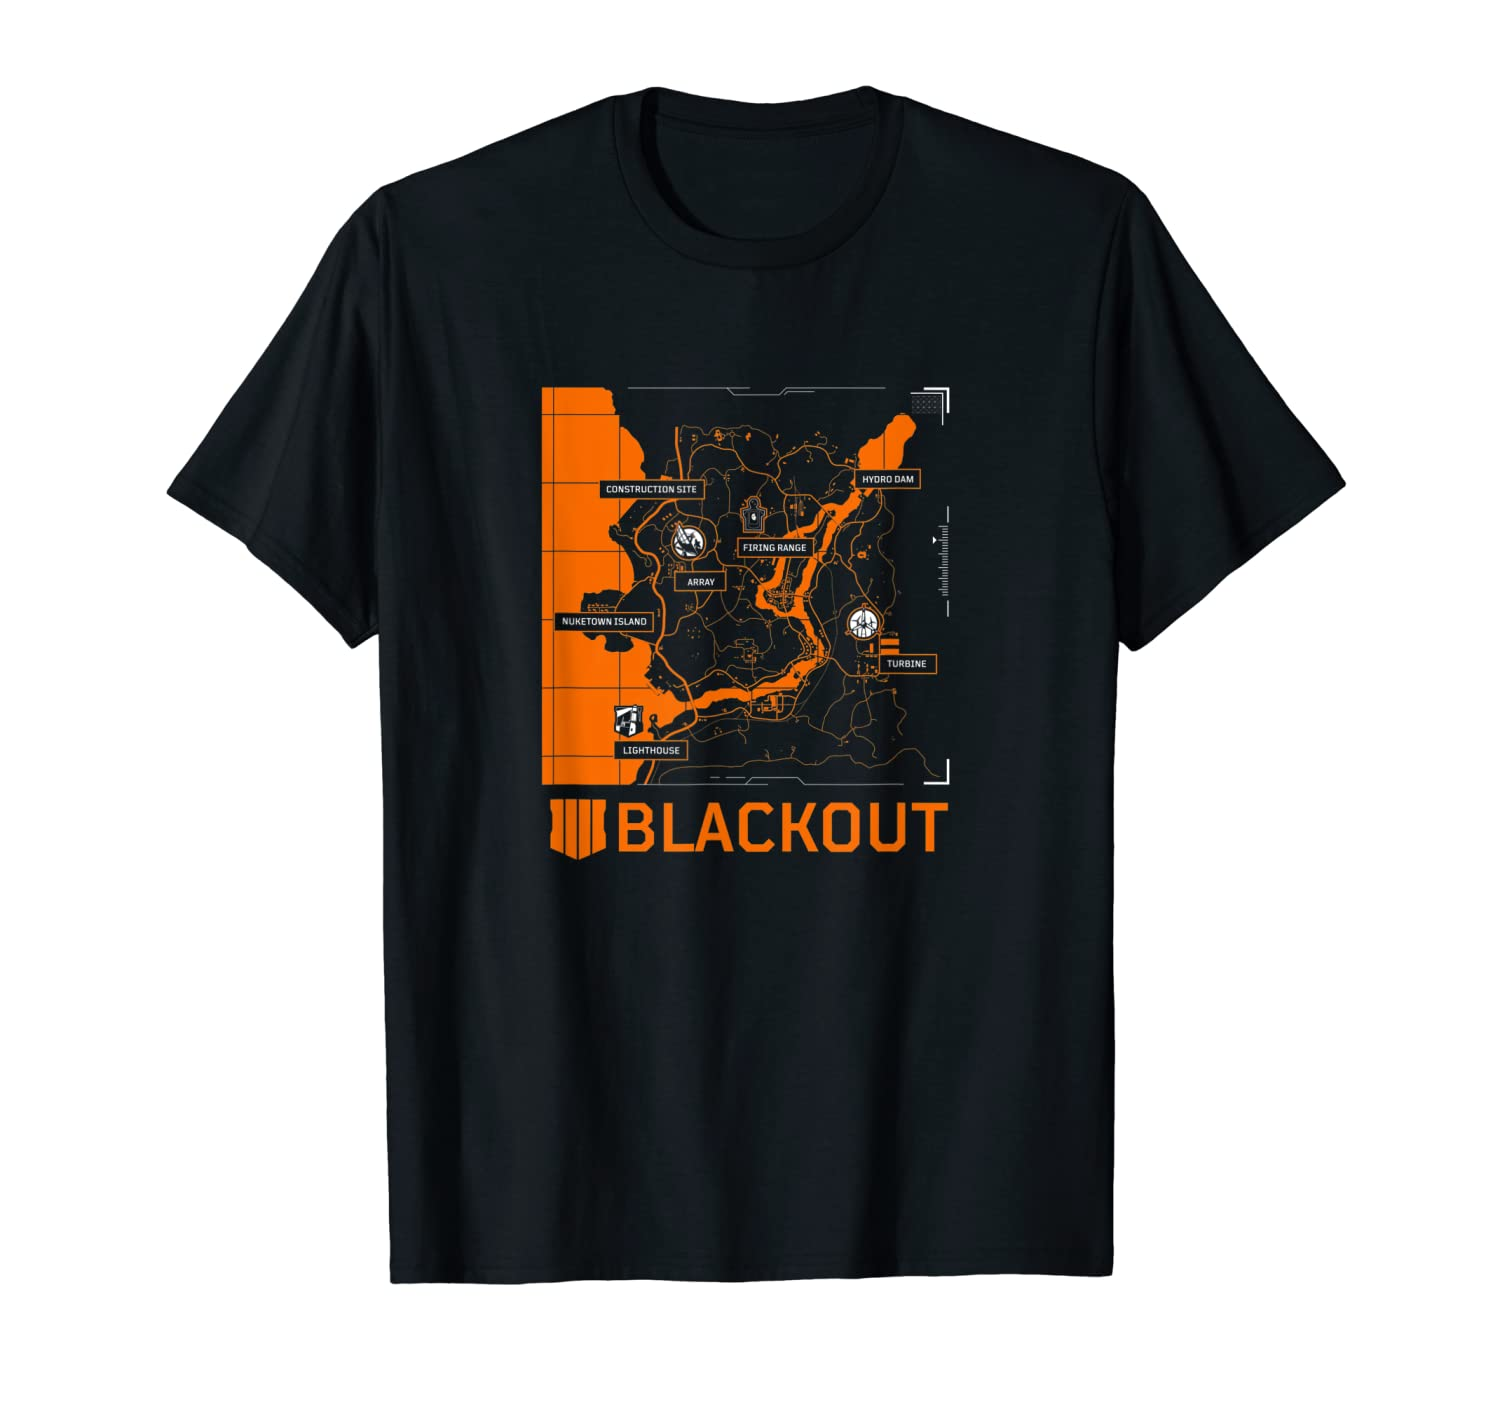 Call of Duty: Black Ops 4 - Blackout Map Tee